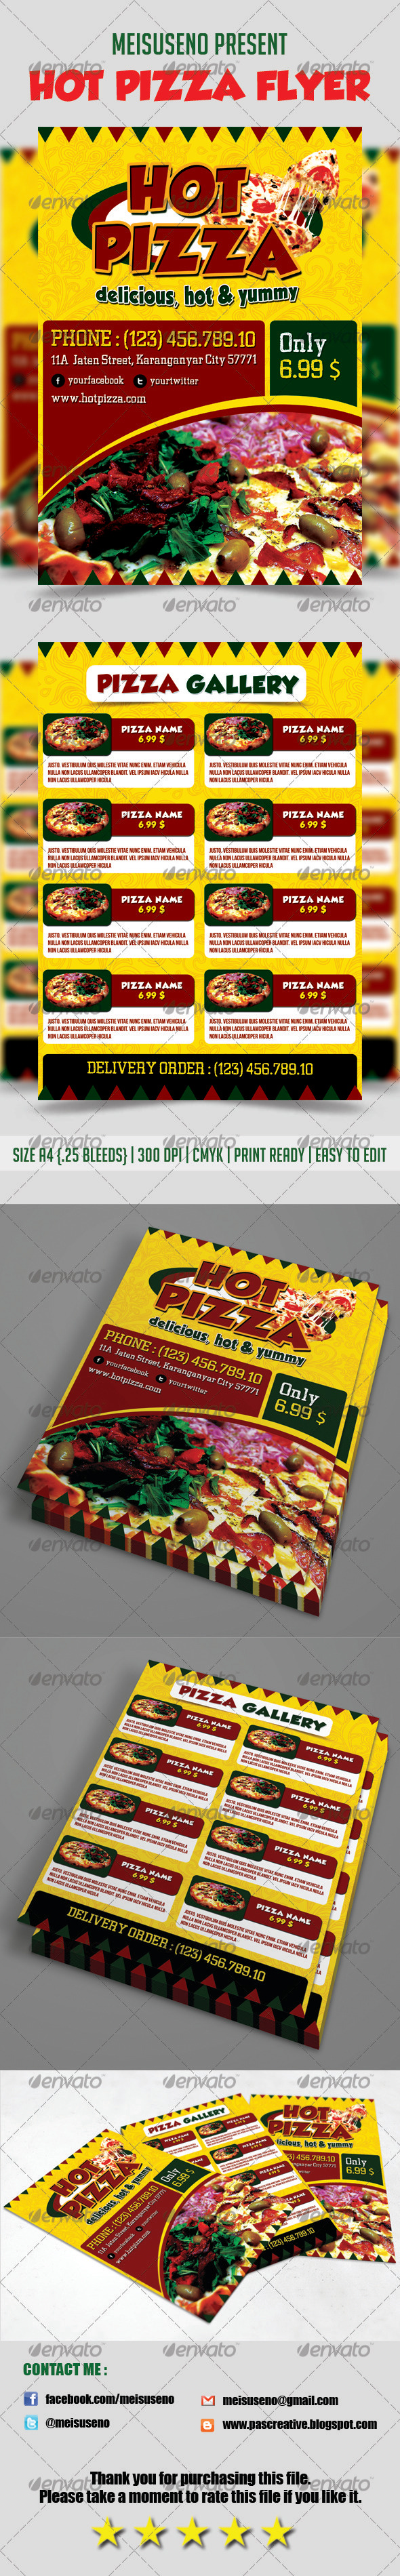 Hot Pizza Flyer Template - Restaurant Flyers